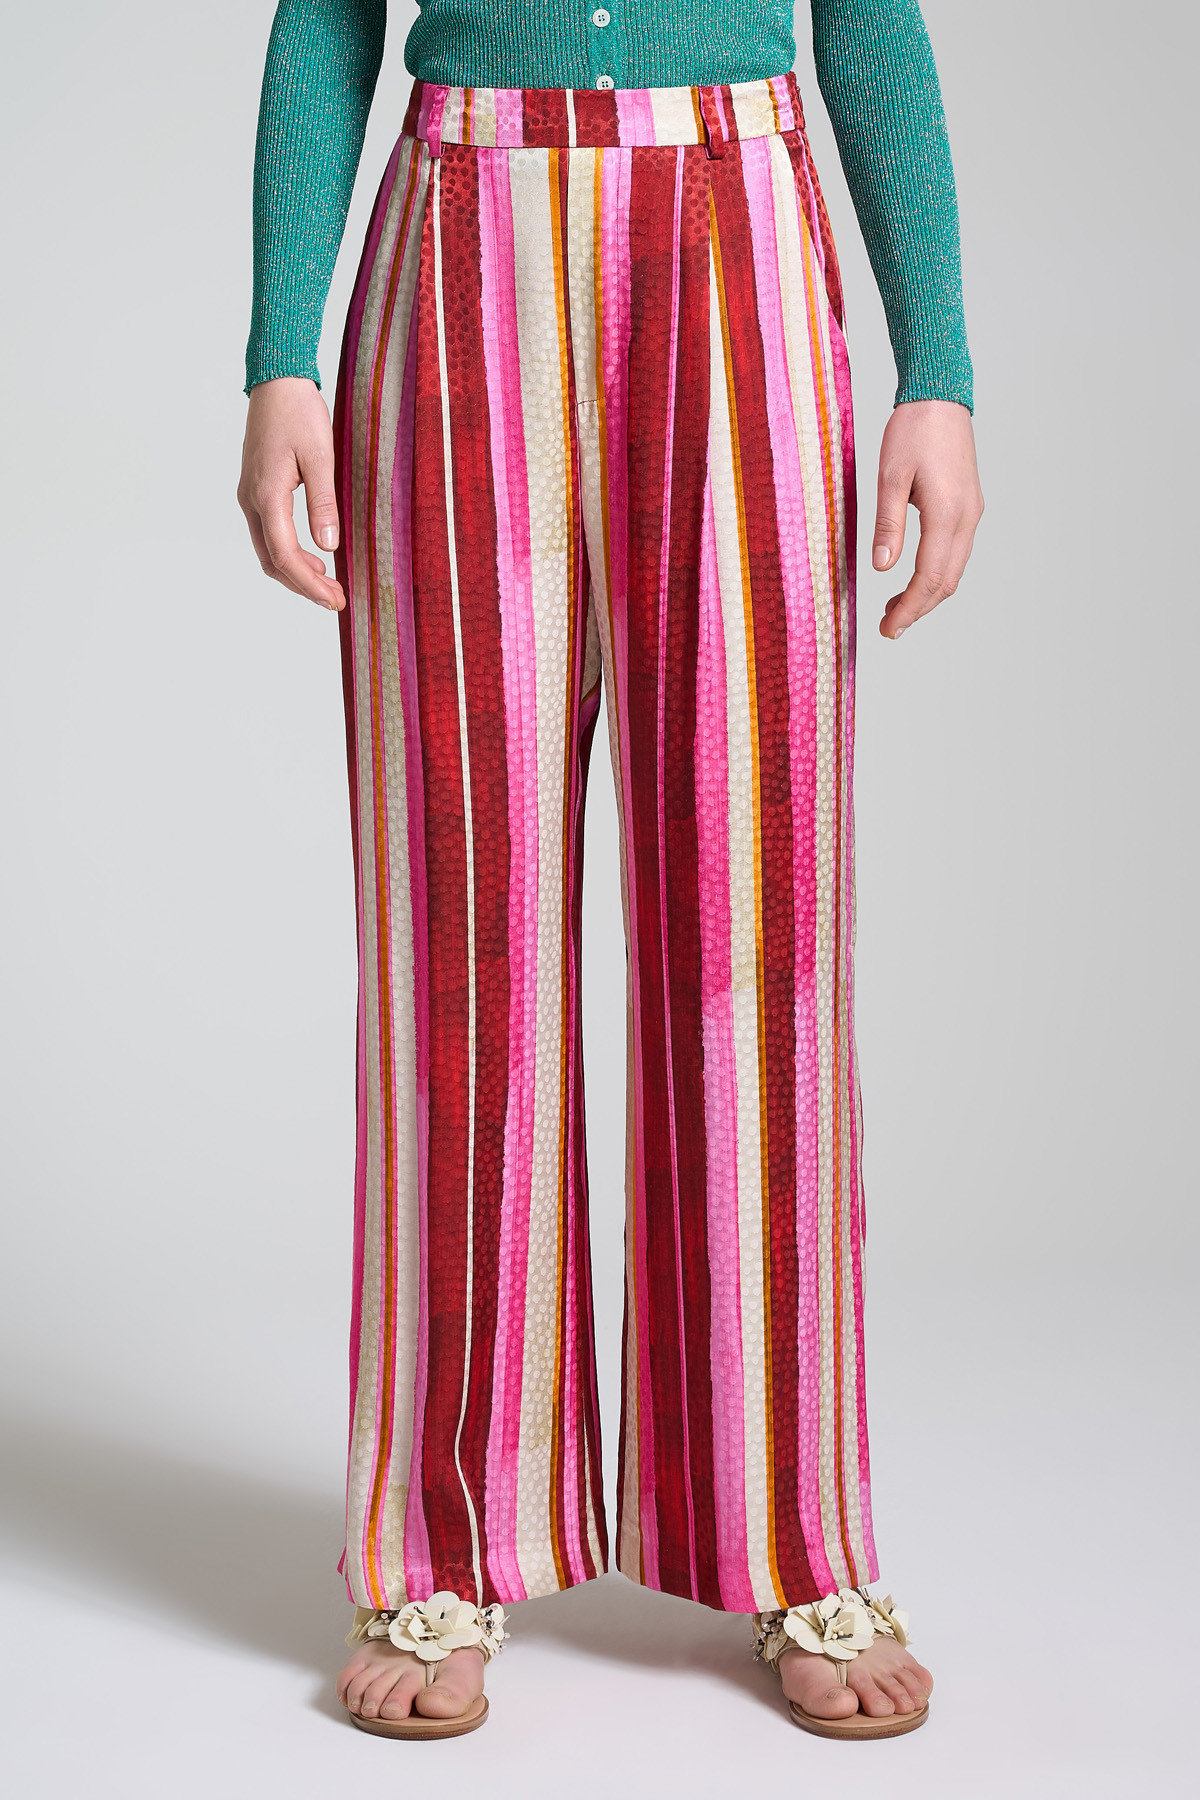 Women's Clothing Straight Leg Trousers Stripes Jacquard with Pink and Red Stripes Maliparmi | Skirts and Pants | JH743250557B3223